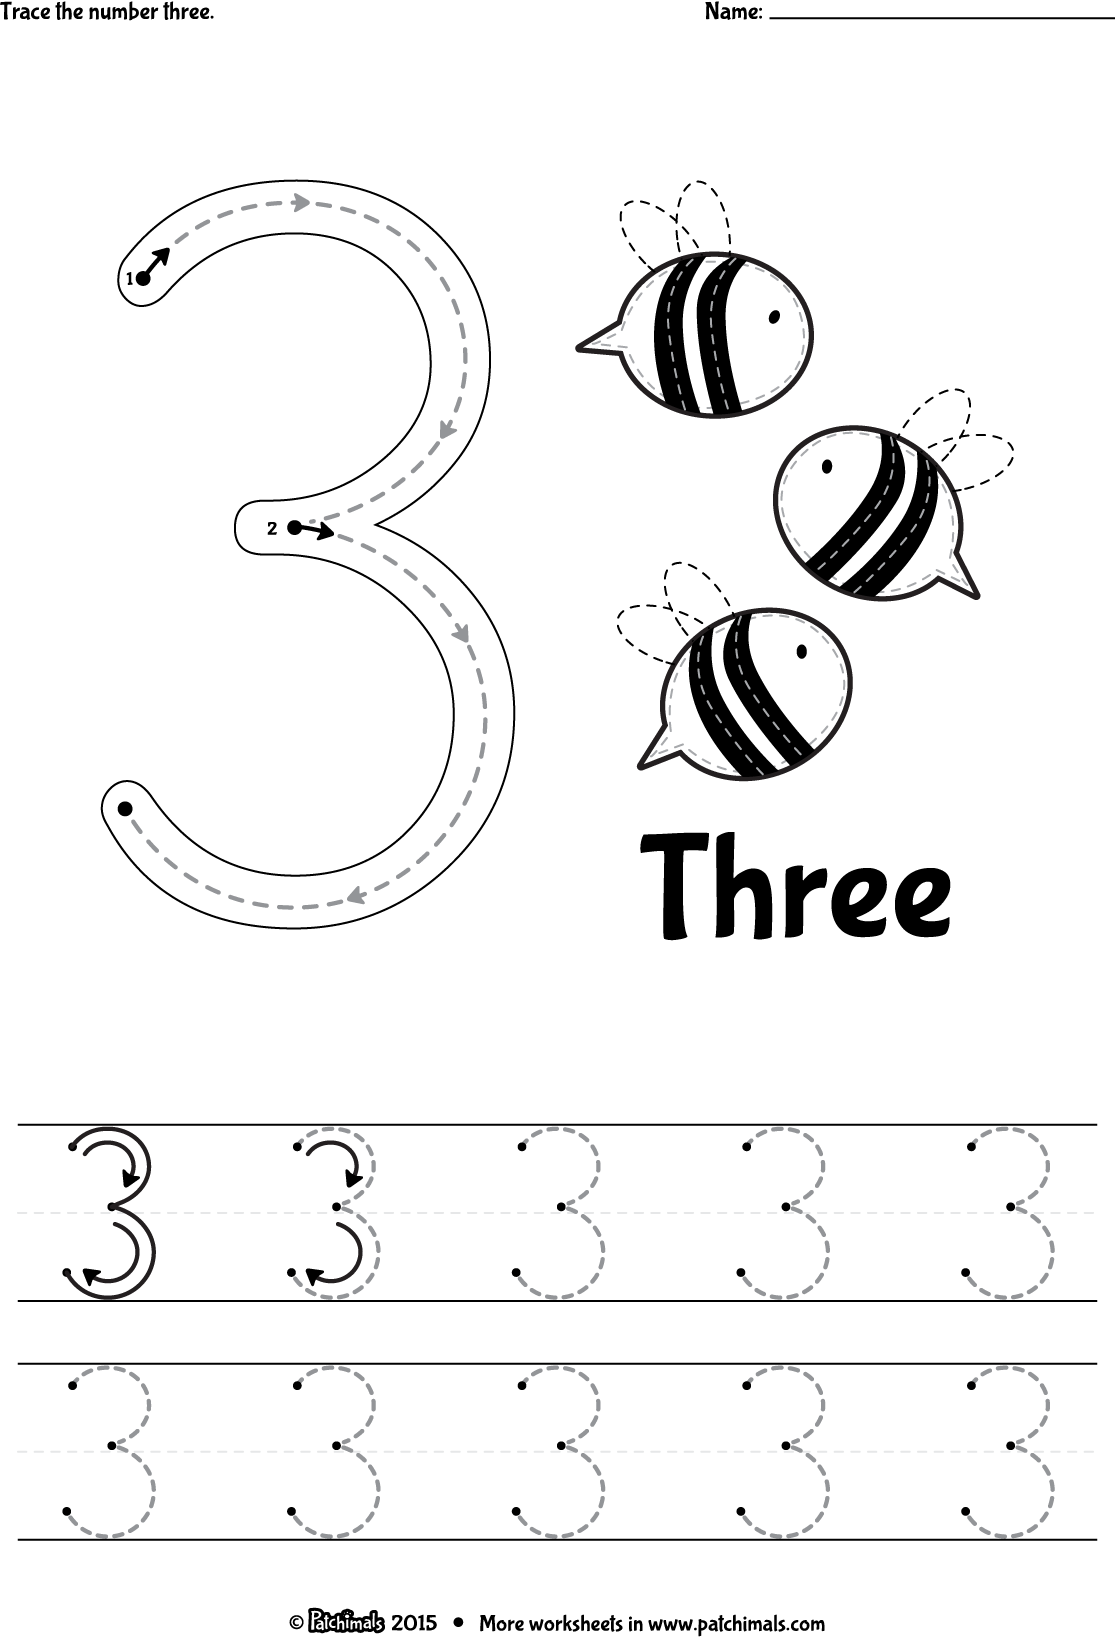 Numbers tracing printables for preschoolers - Number 3 Number 3 Tracing Worksheet